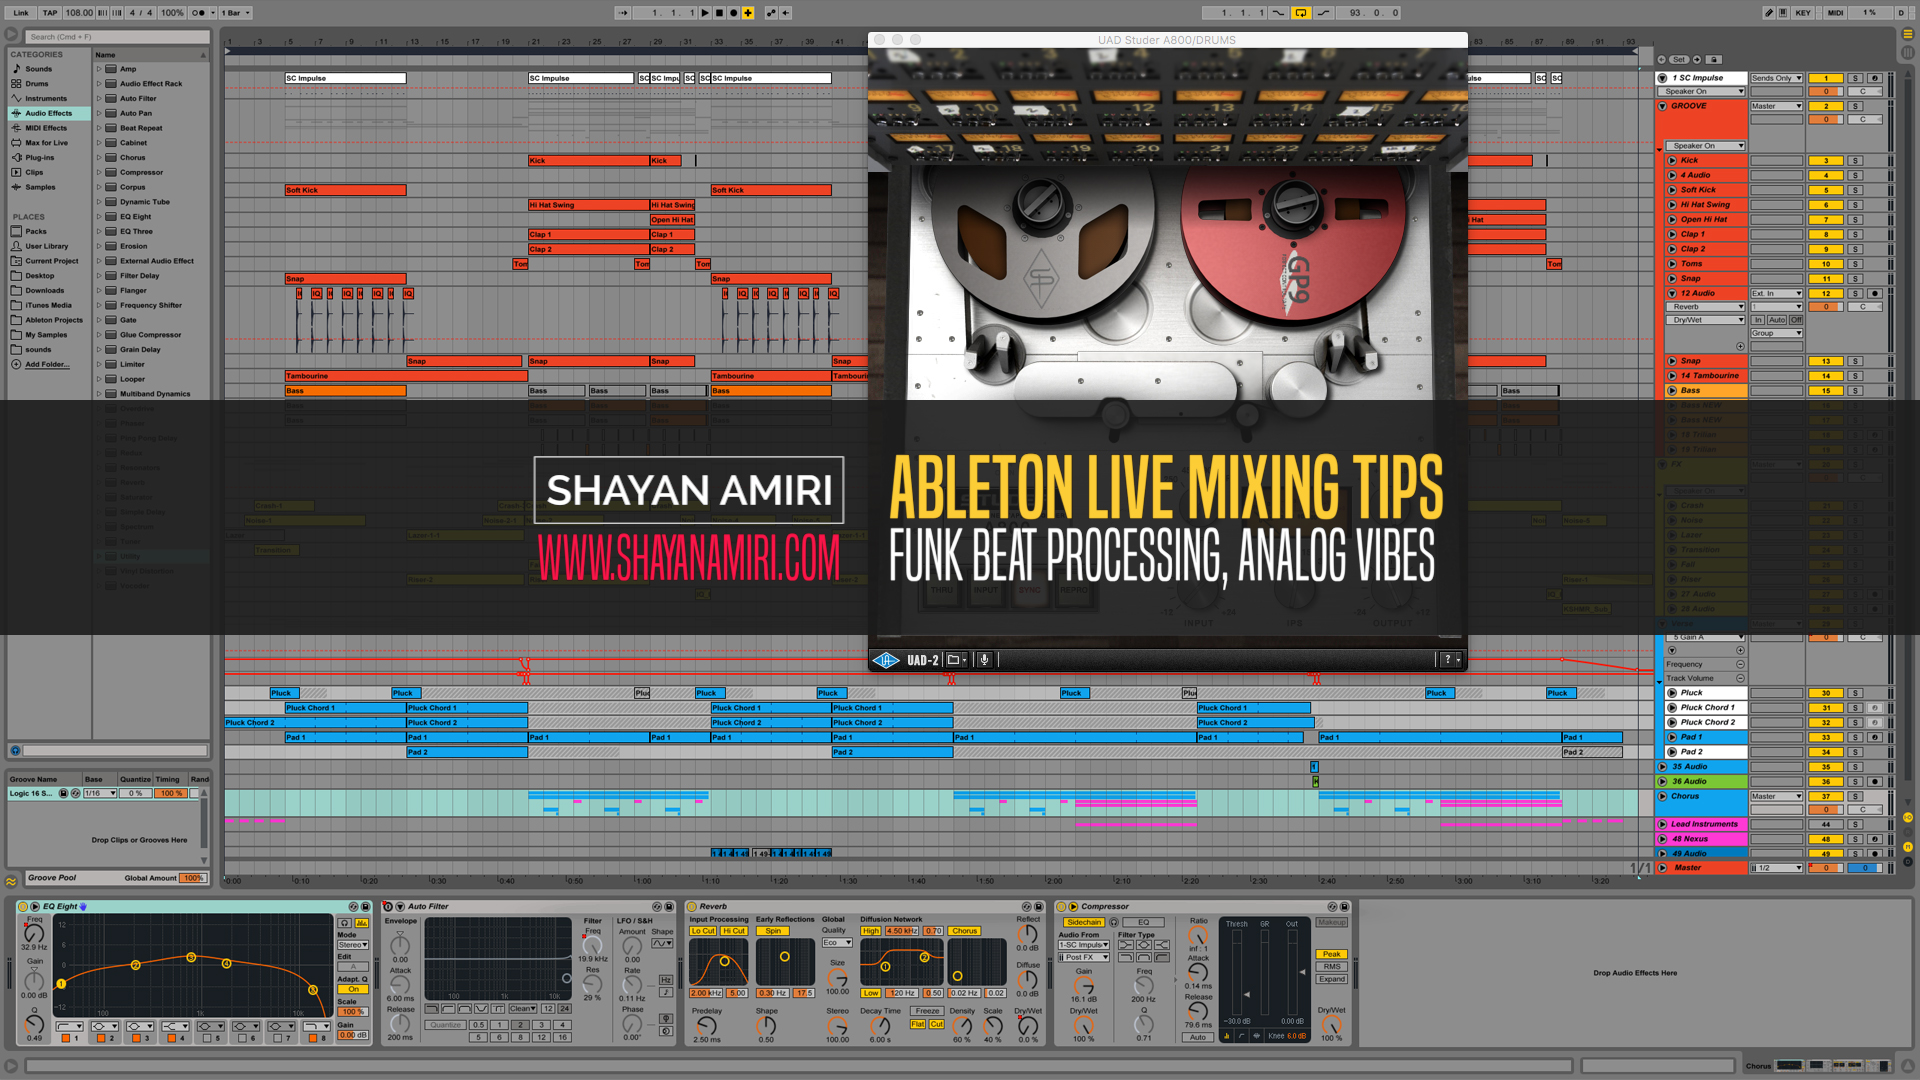 Slate Digital Plugins Archives - Shayan Amiri, Los Angeles Music